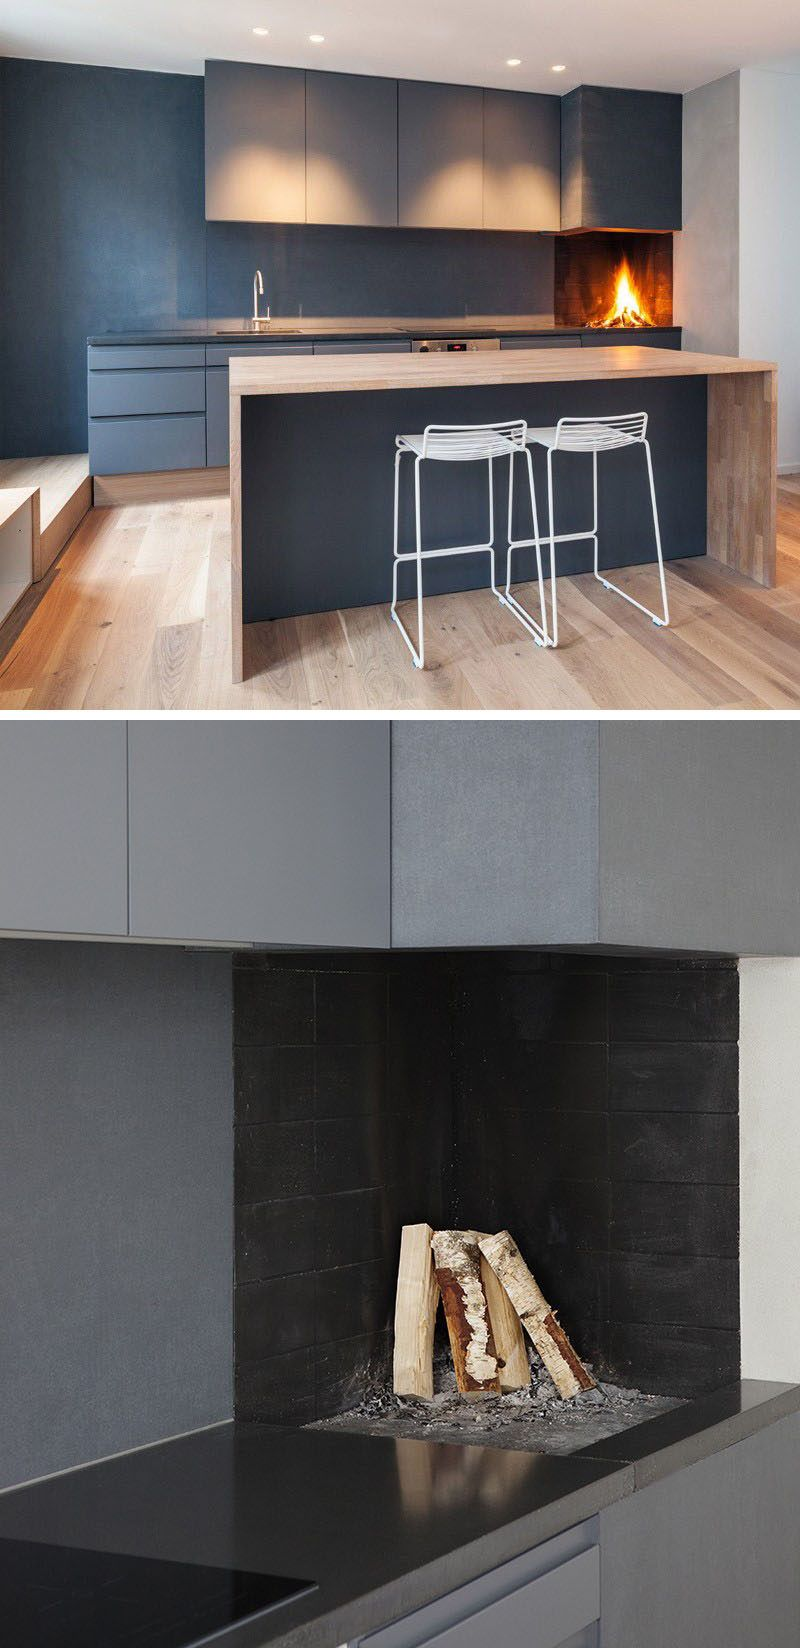 Kitchen design idea include a builtin wood fire oven in your